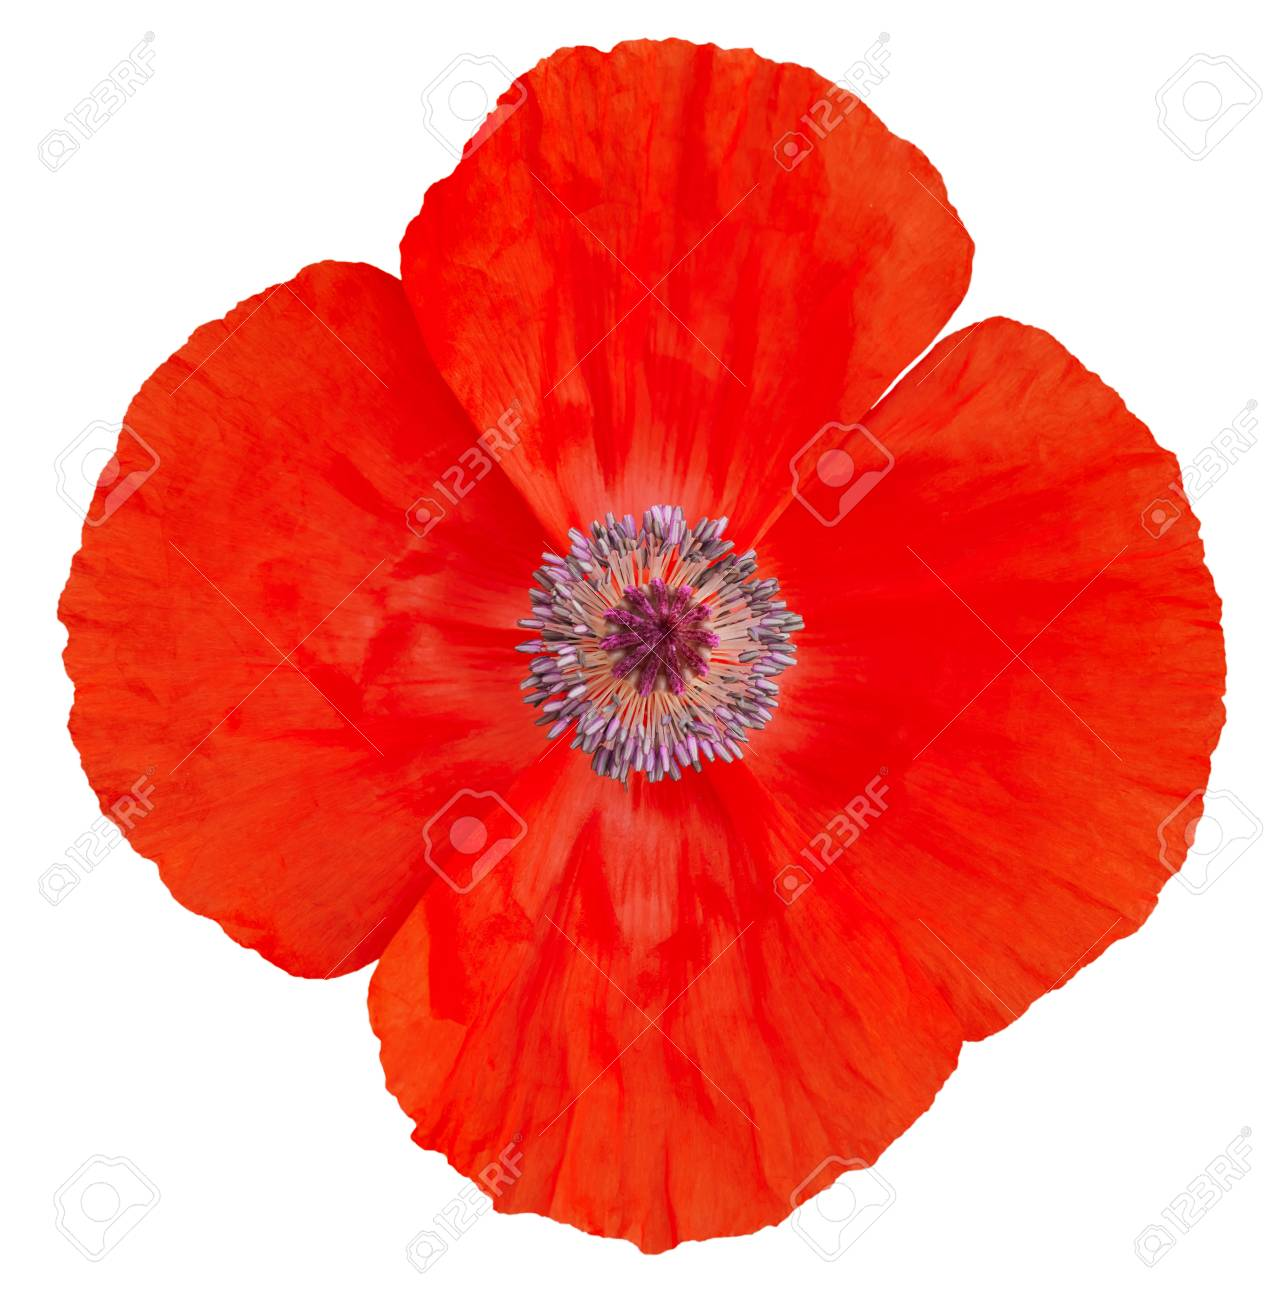 Poppy flower remembrance day stock photo picture and royalty free poppy flower remembrance day stock photo 38987350 mightylinksfo